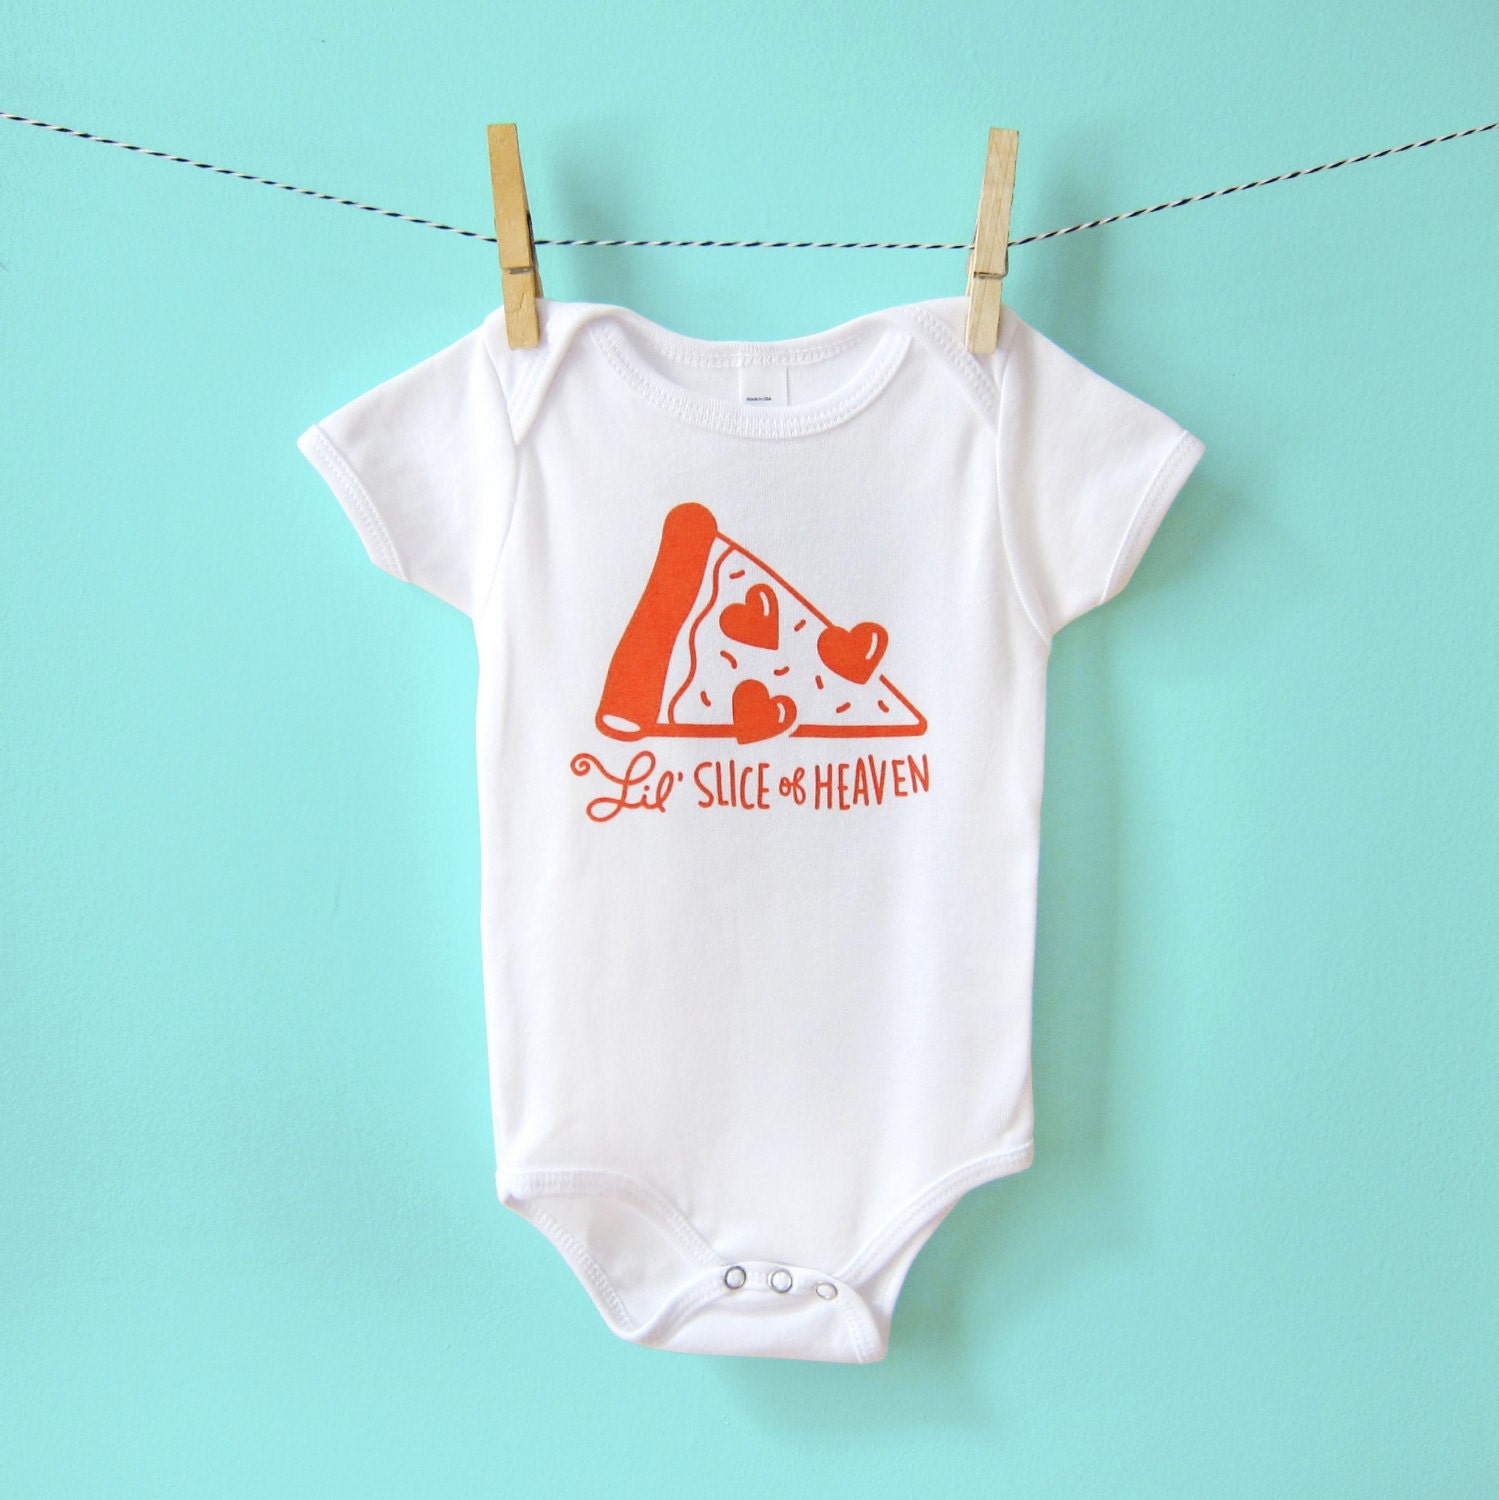 esie Baby Gift Funny Baby Clothes Gender Neutral Pizza